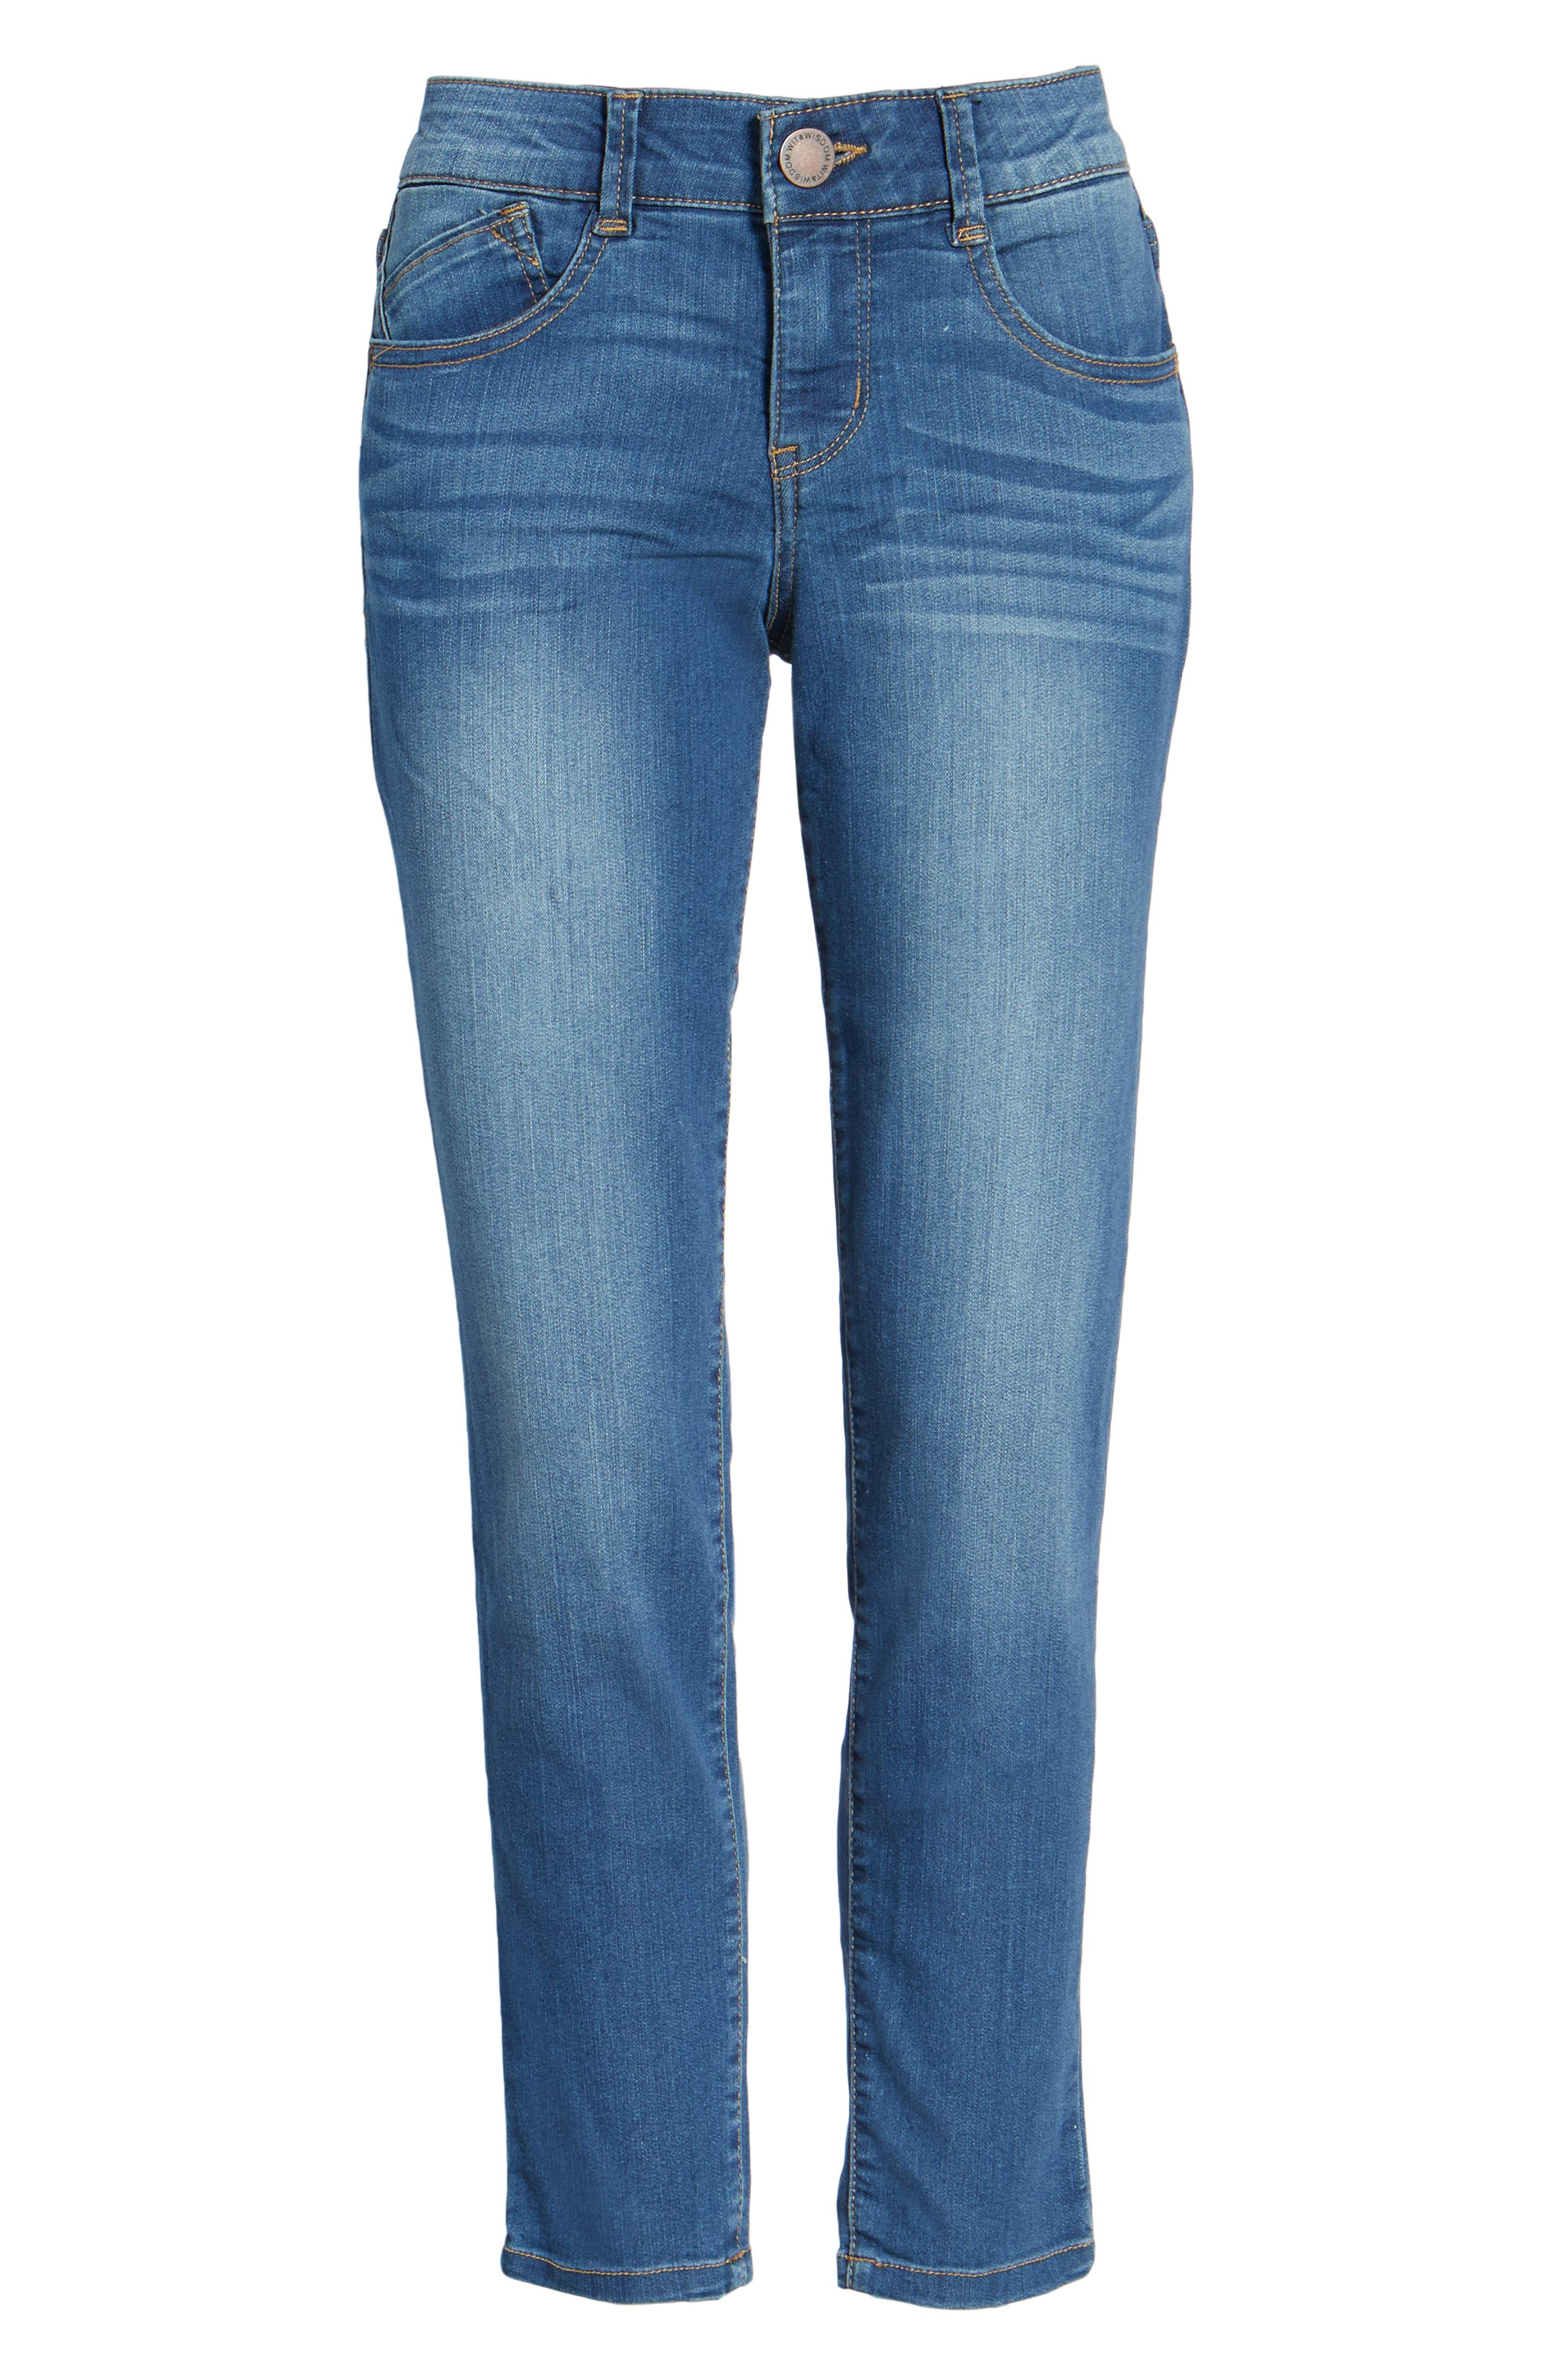 'Ab-solution' Stretch Ankle Skinny Jeans,                             Main thumbnail 1, color,                             421